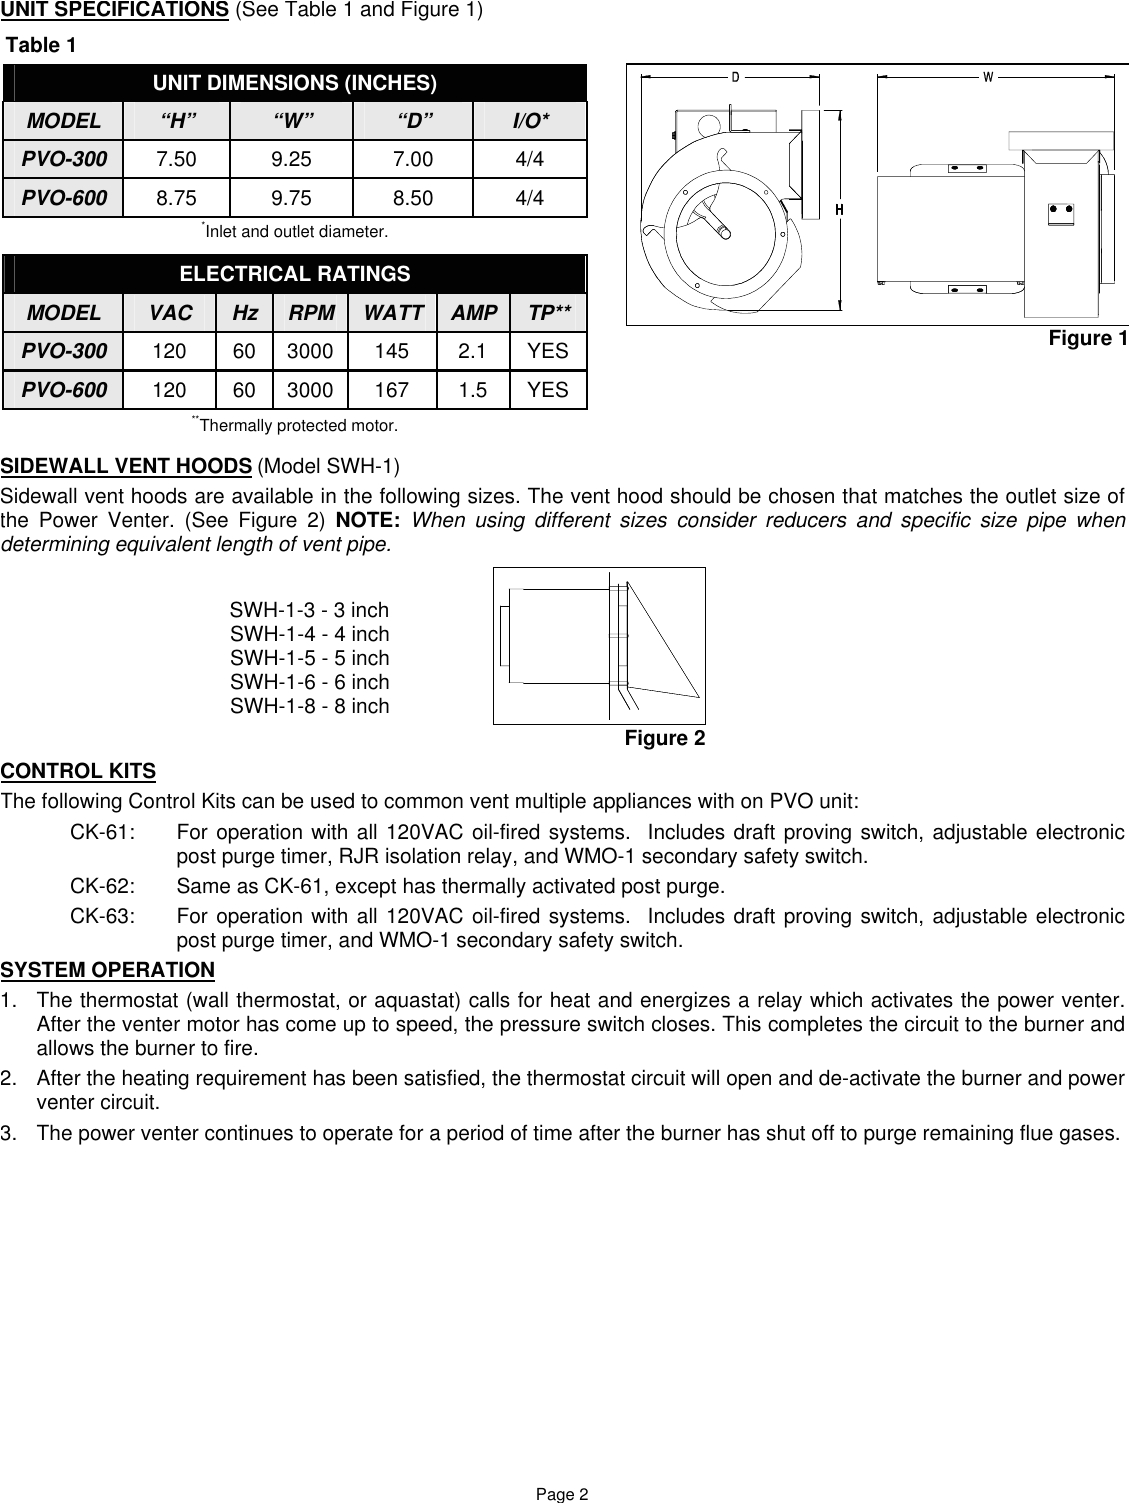 fieldcontrolspvo600usersmanual427562 614804742 user guide page 2 png